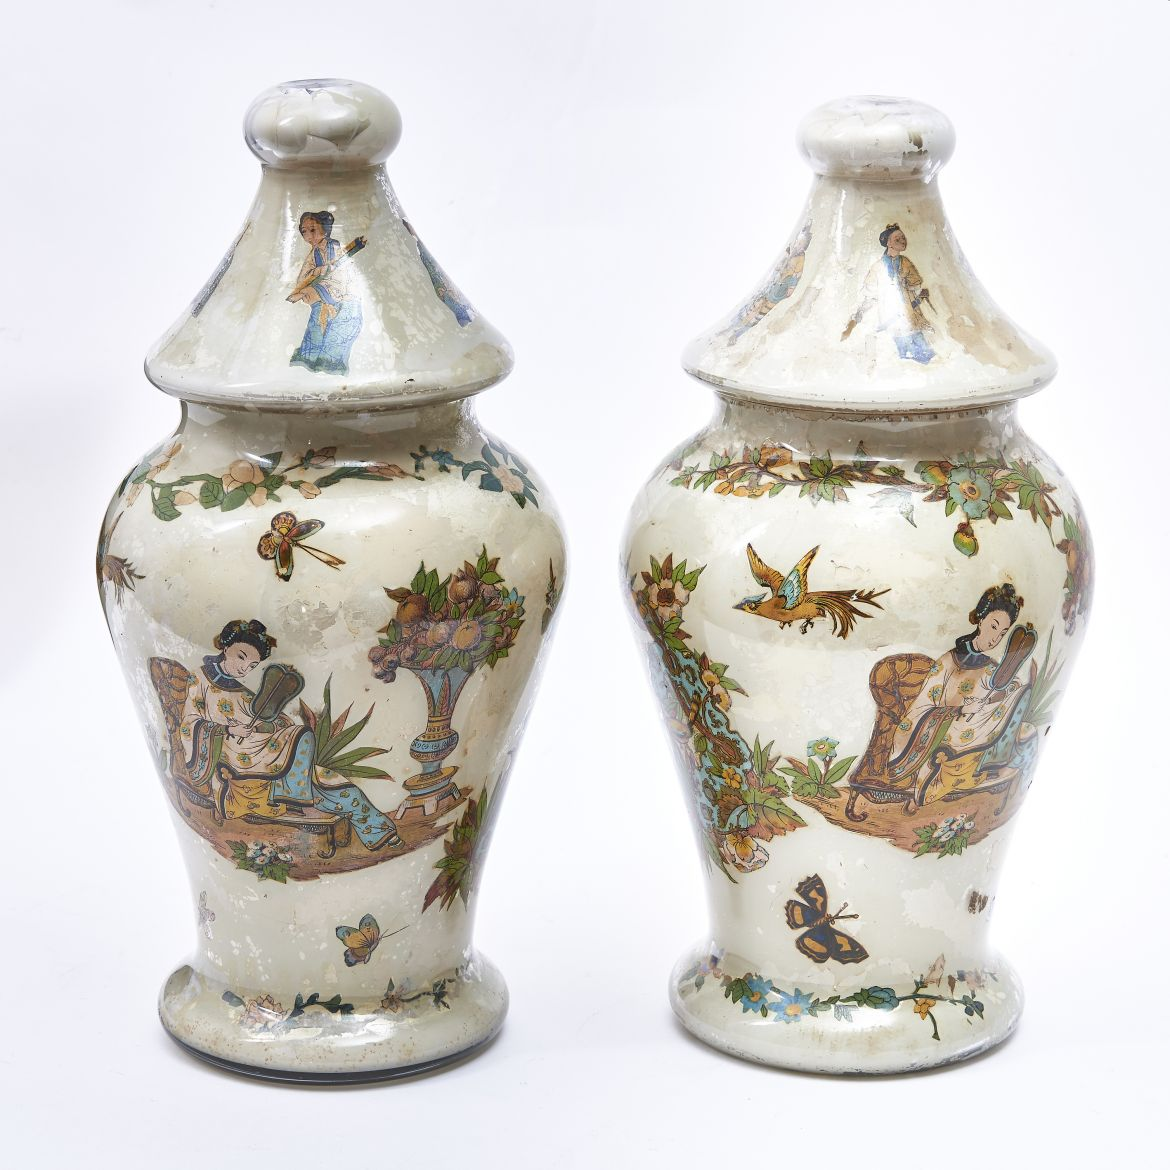 French Decalcomania Vases